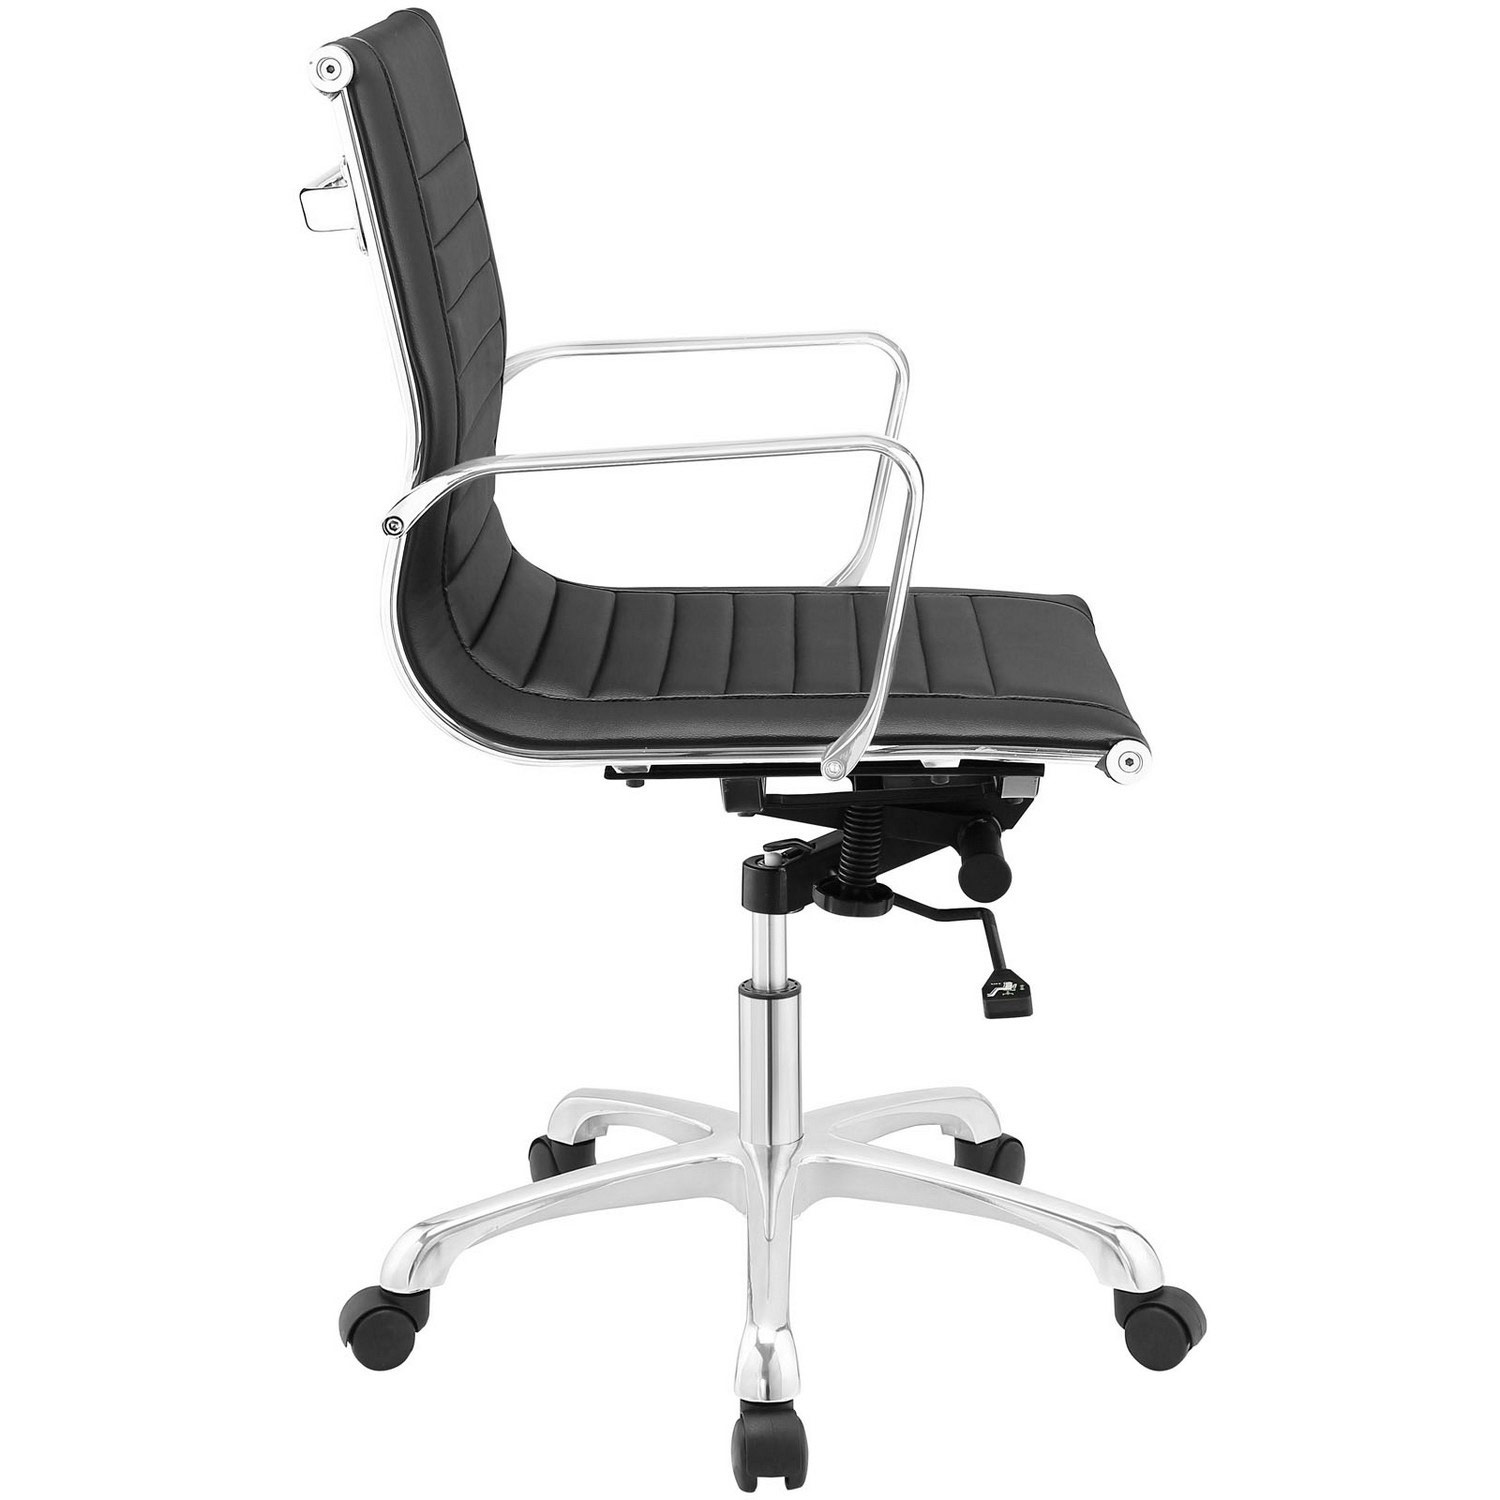 Modway Runway Mid Back Office Chair - Black